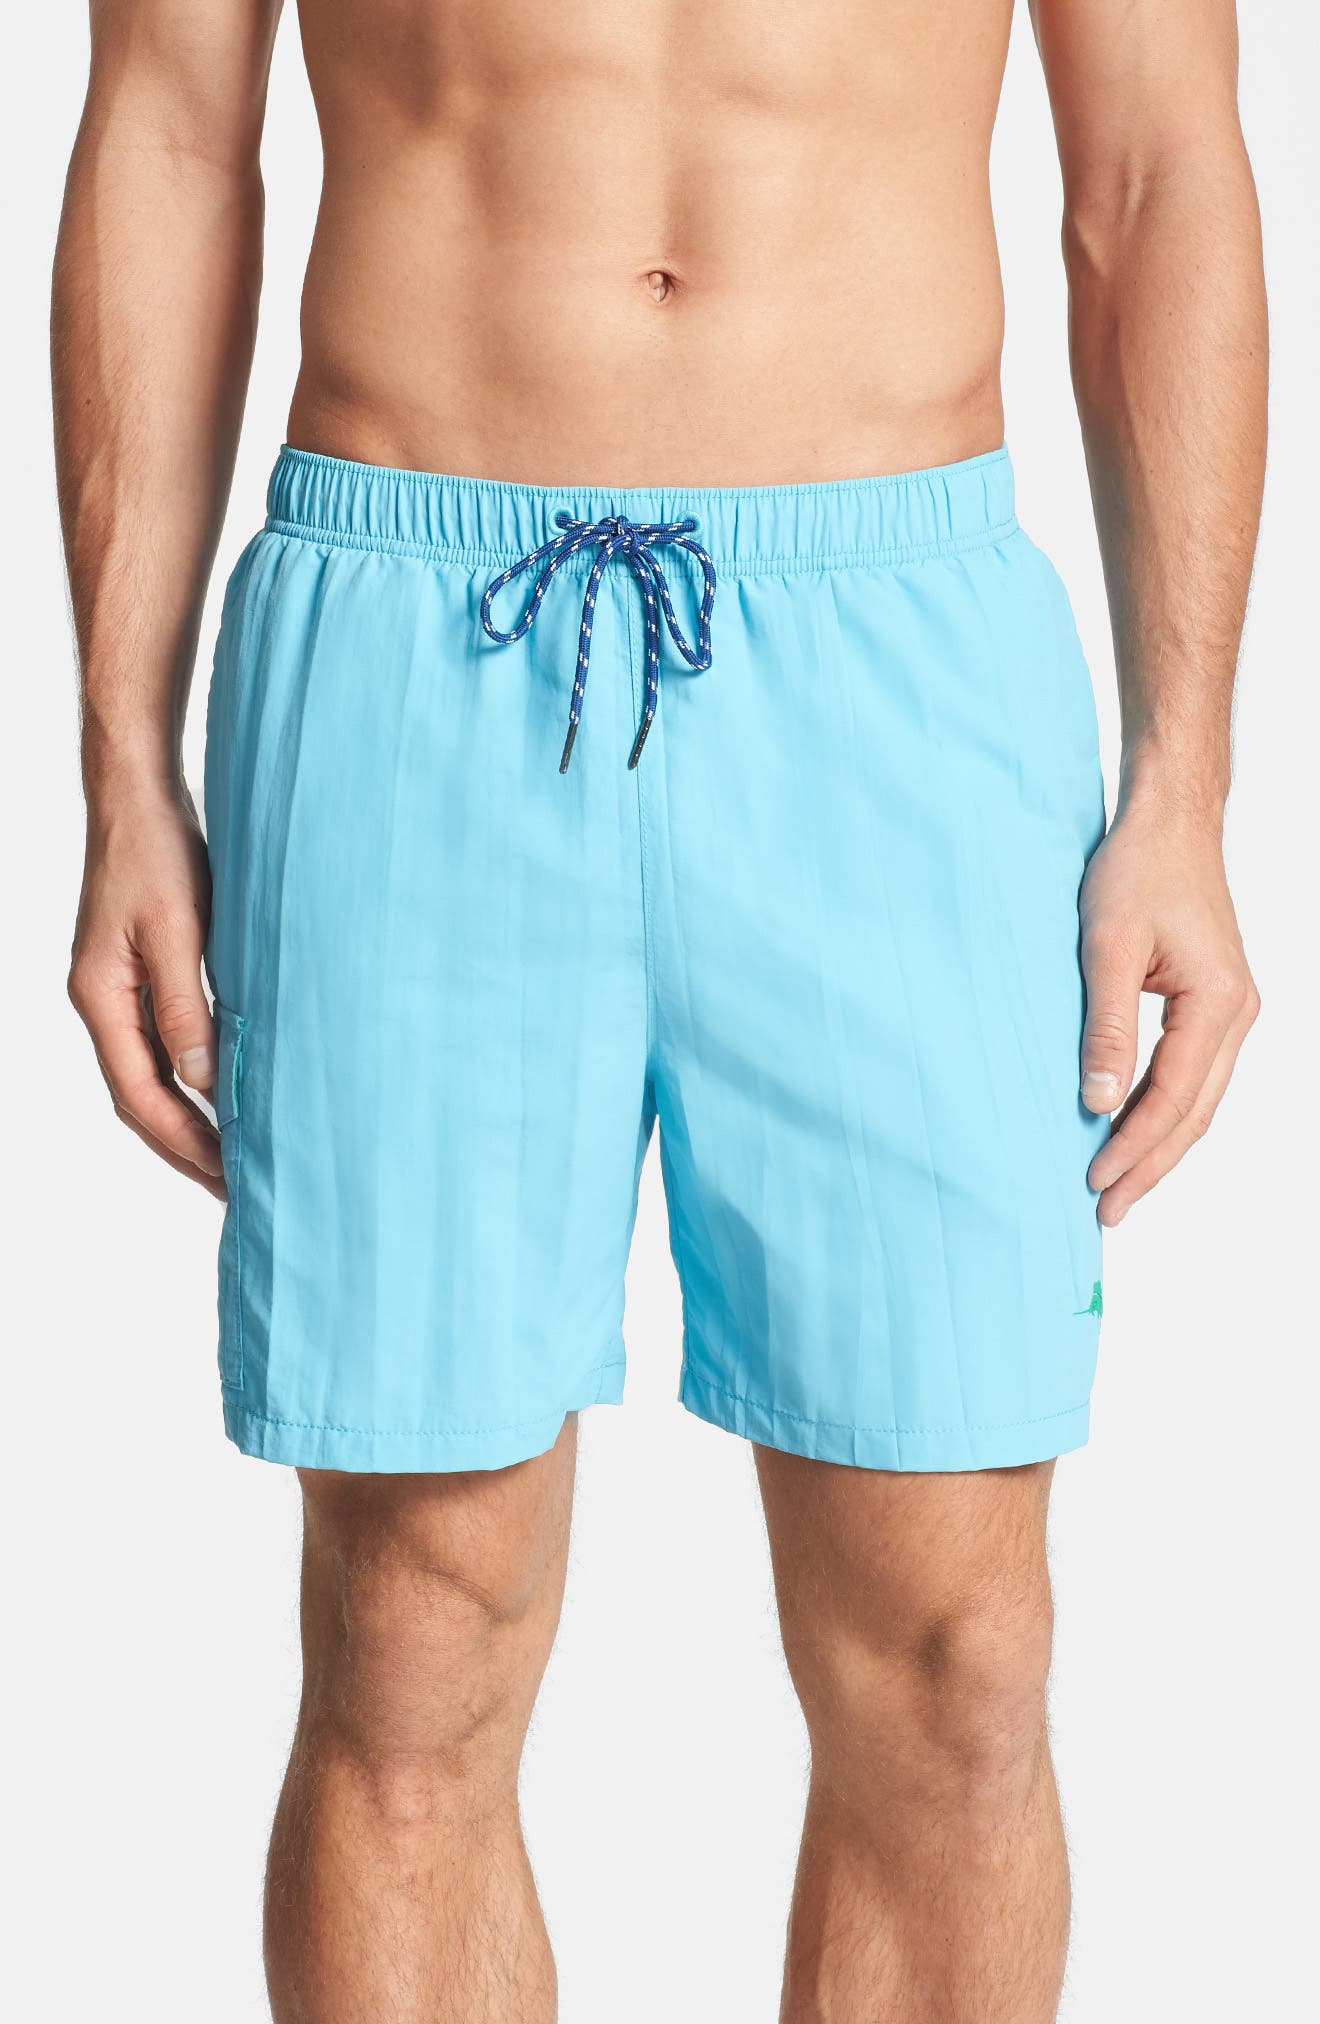 Naples Happy Go Cargo Swim Trunks,                             Alternate thumbnail 10, color,                             400